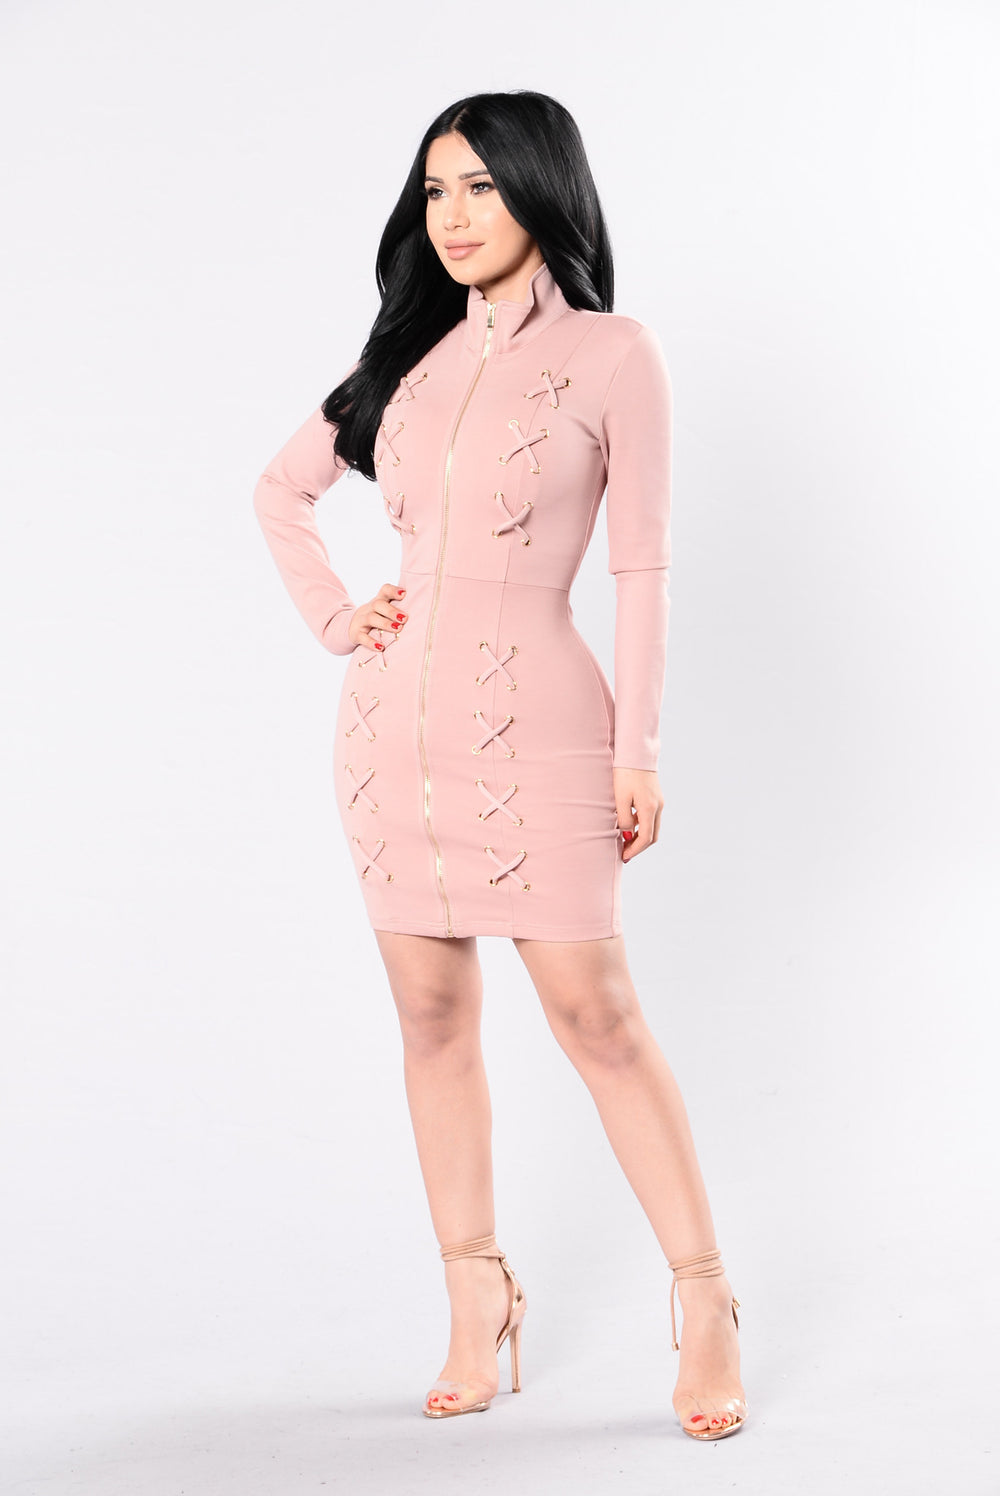 Kryptonite Dress - Mauve